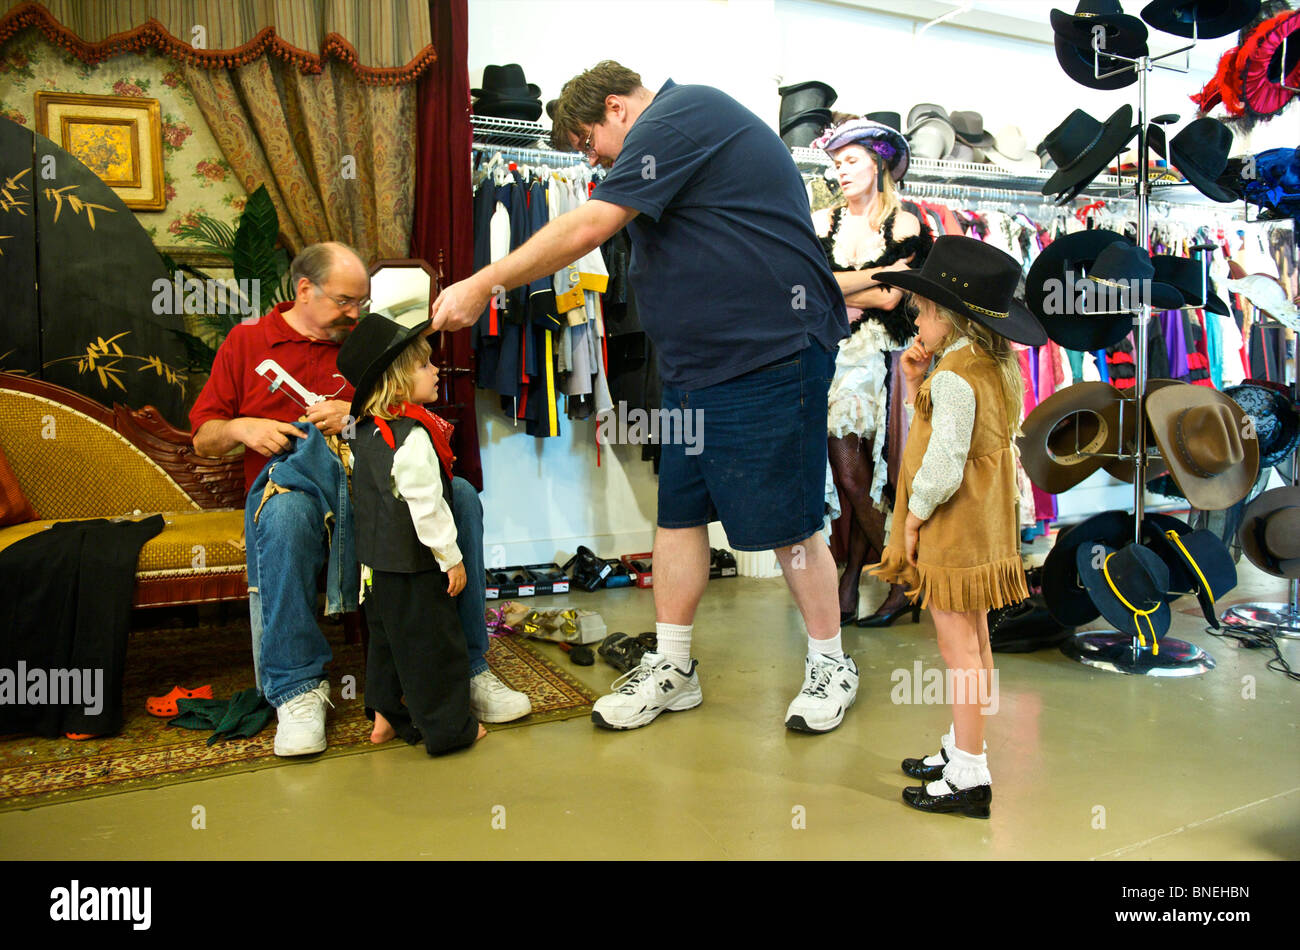 Tourist family getting ready in western style clothing at Wildwest for photo Shoot in Galveston, USA Stock Photo